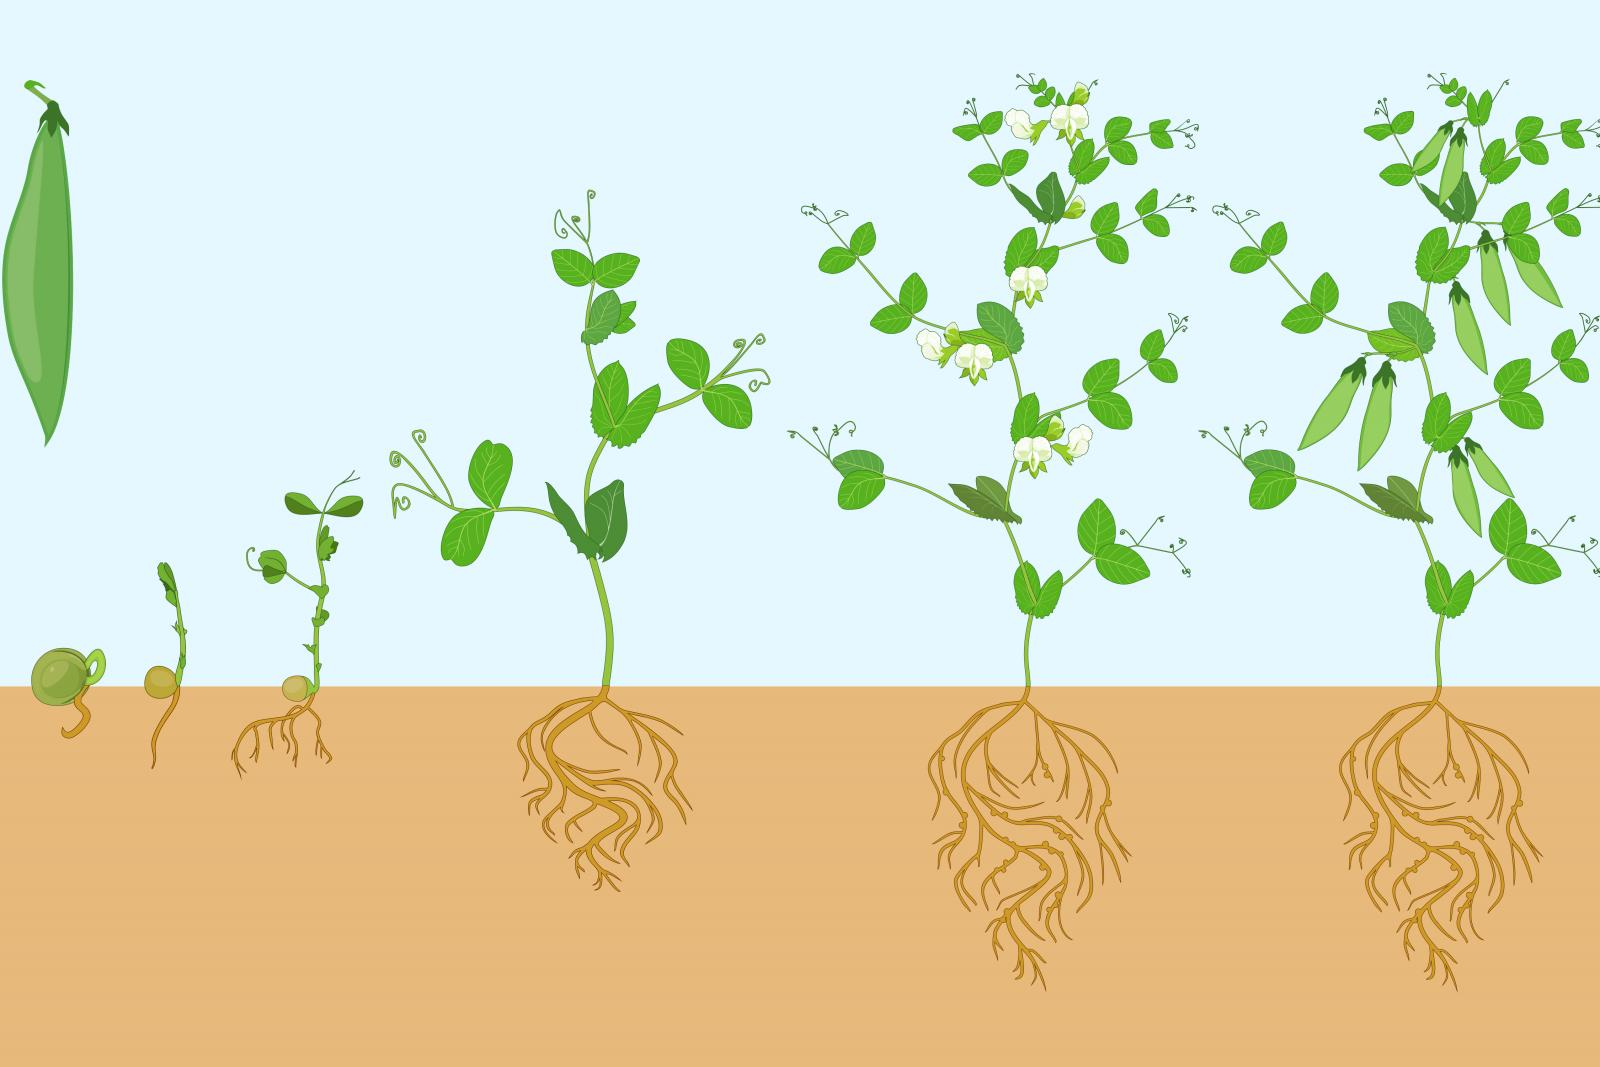 Life cycle of bean plant